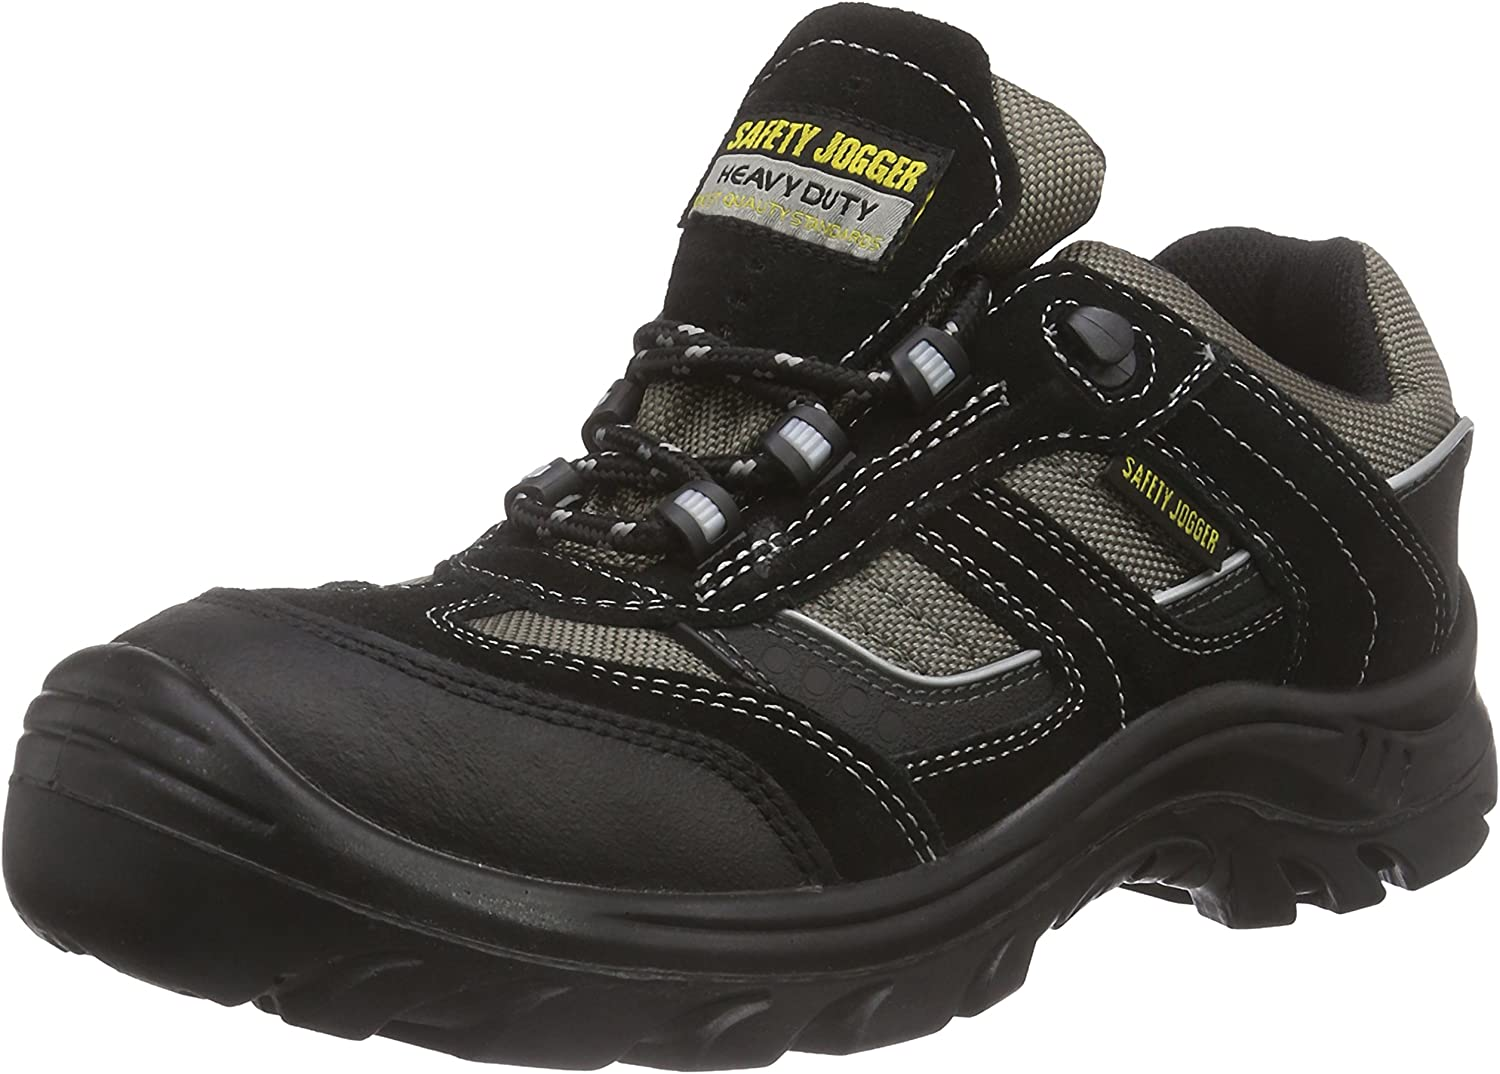 Safety Jogger Jumper, Unisex - Adults Working & Safety shoes S3, black, (blk blk dgr 117), EU 43